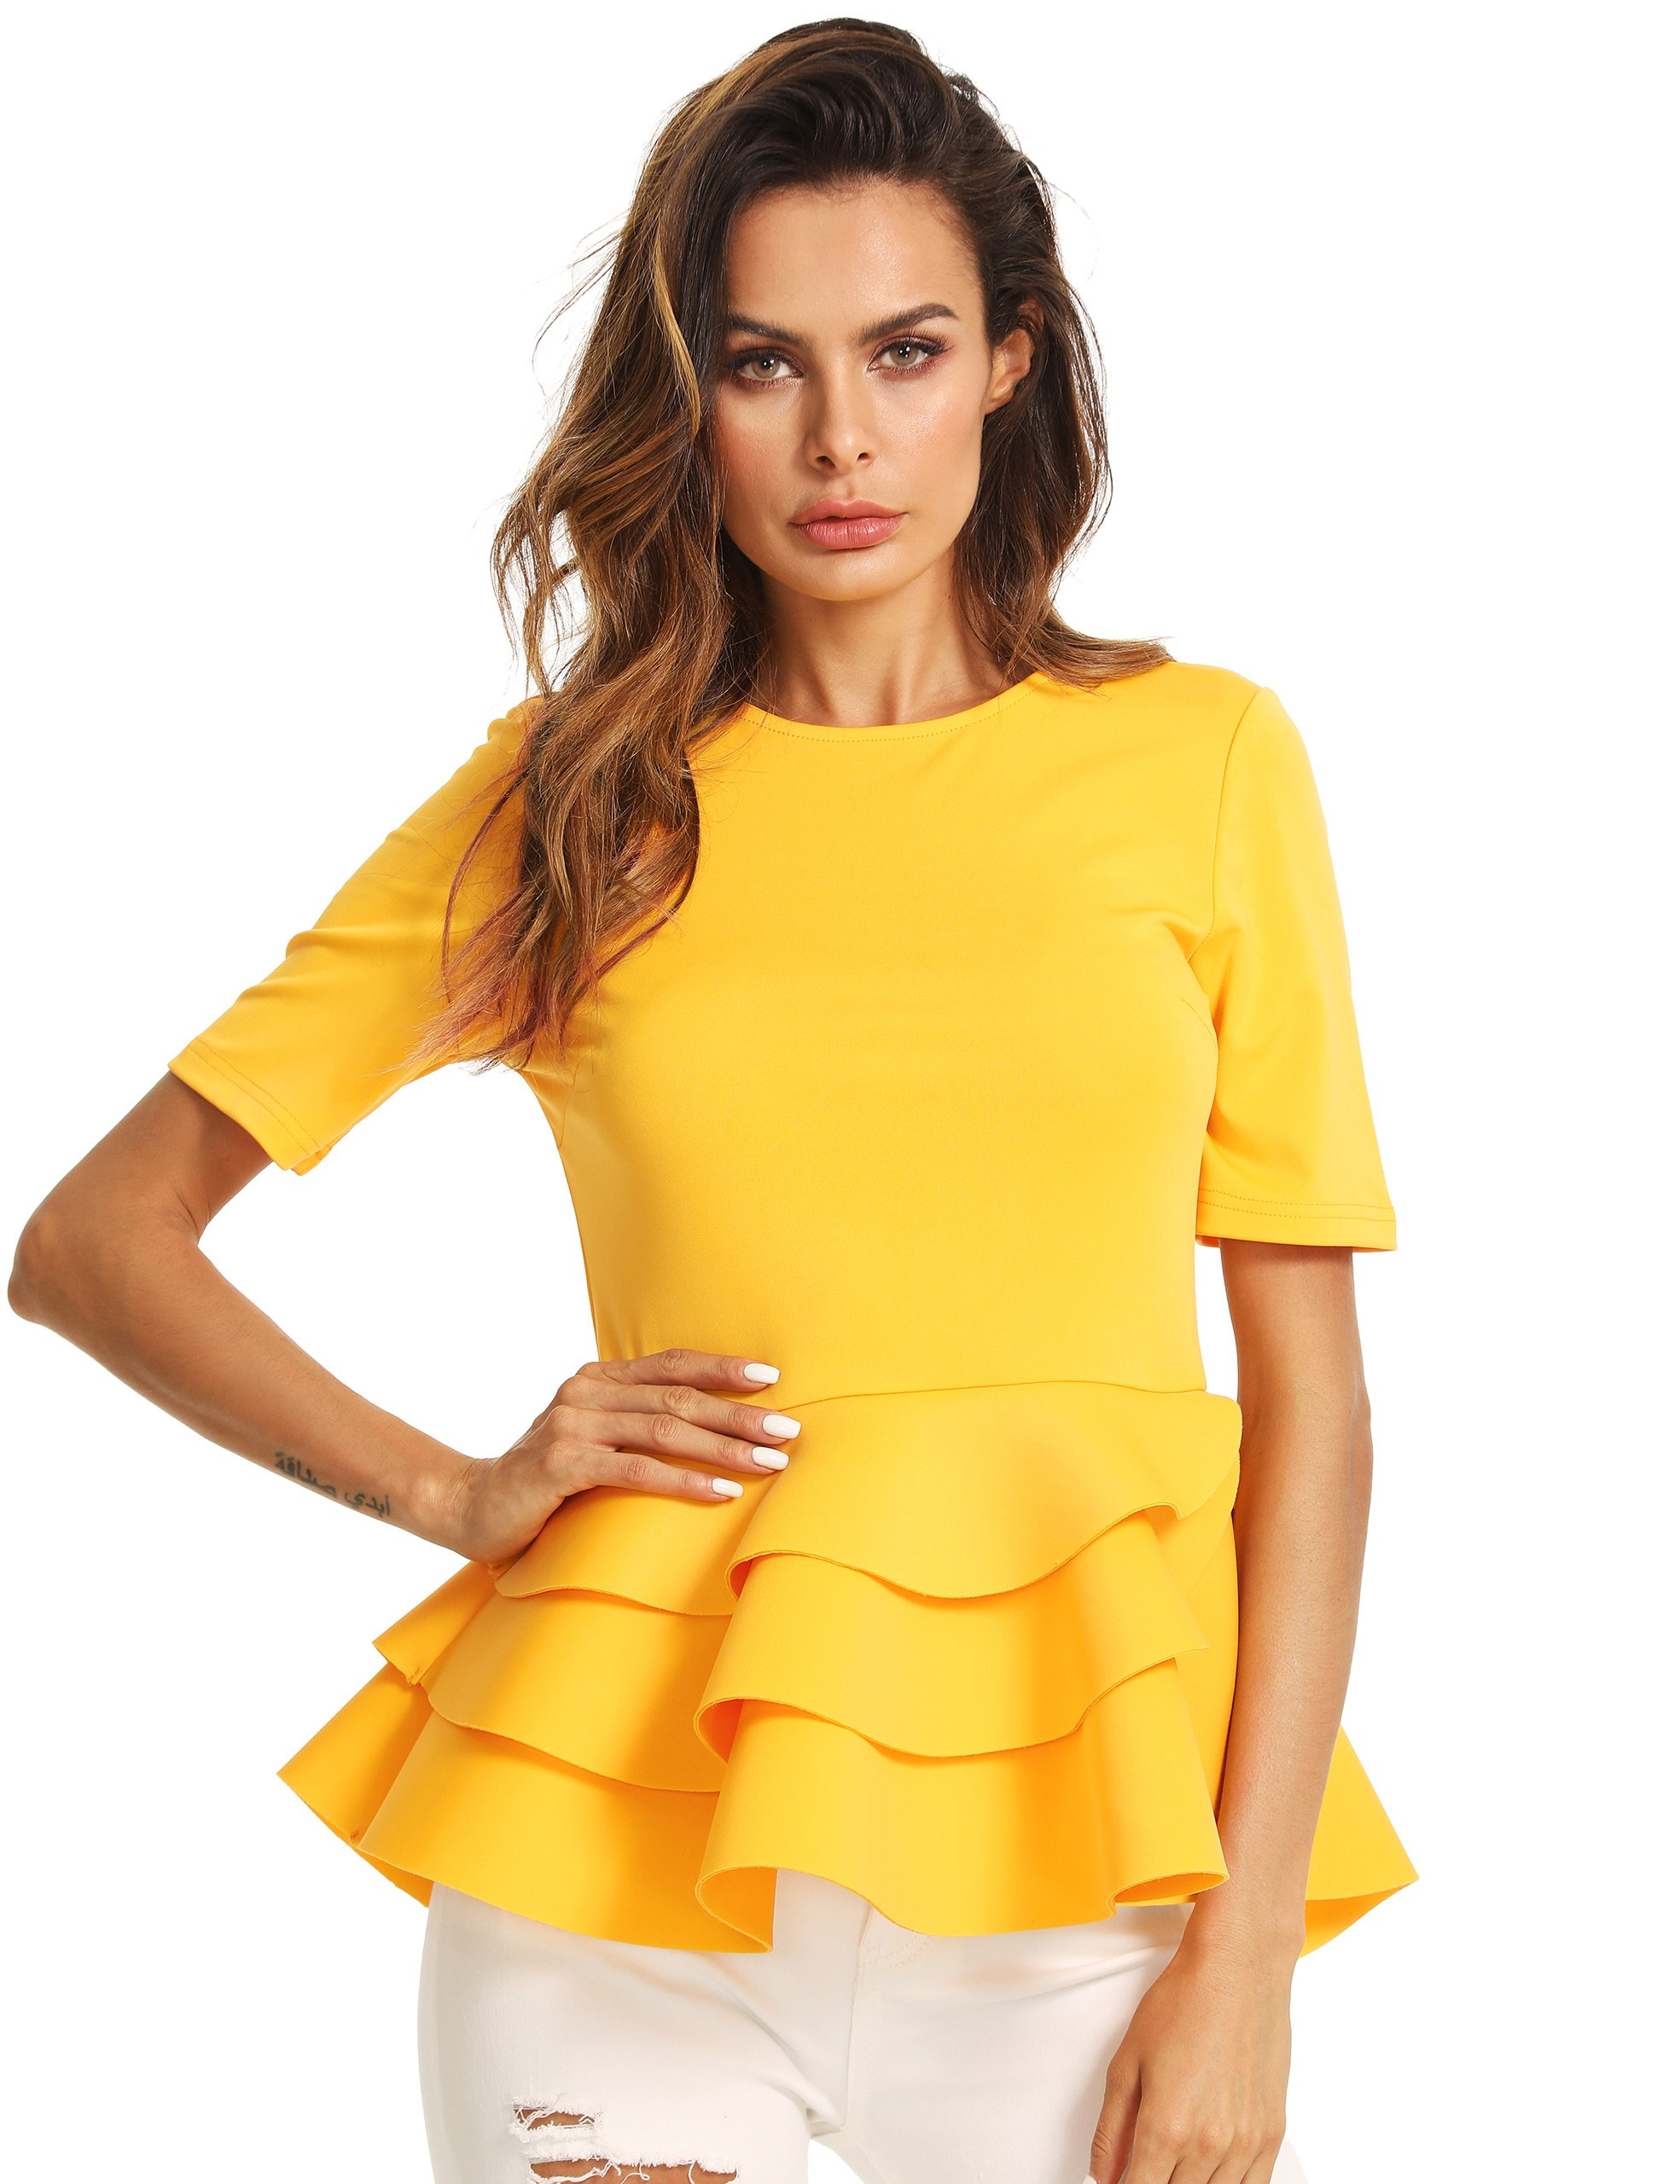 Romwe Women's Vintage Layered Ruffle Hem Slim Fit Round Neck Peplum Blouse Yellow XL